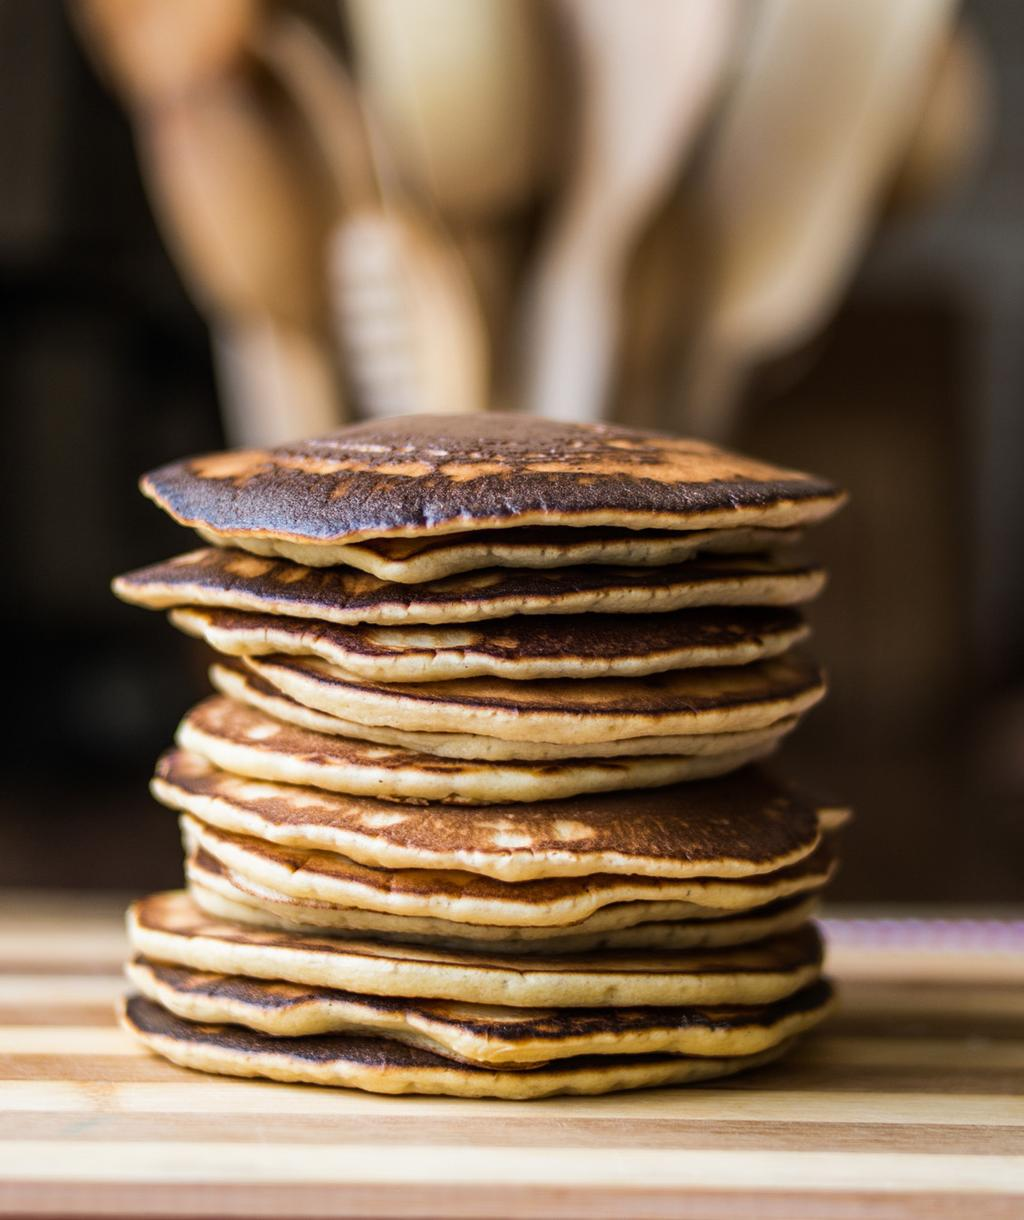 EGG DISHES & BREAKFAST FOODS Grain-Free Protein Pancakes 2 scoops TLS Nutrition Shake Vanilla 1/3 cup unsweetened applesauce 2 eggs Cinnamon and nutmeg to taste Coconut oil Mix all ingredients